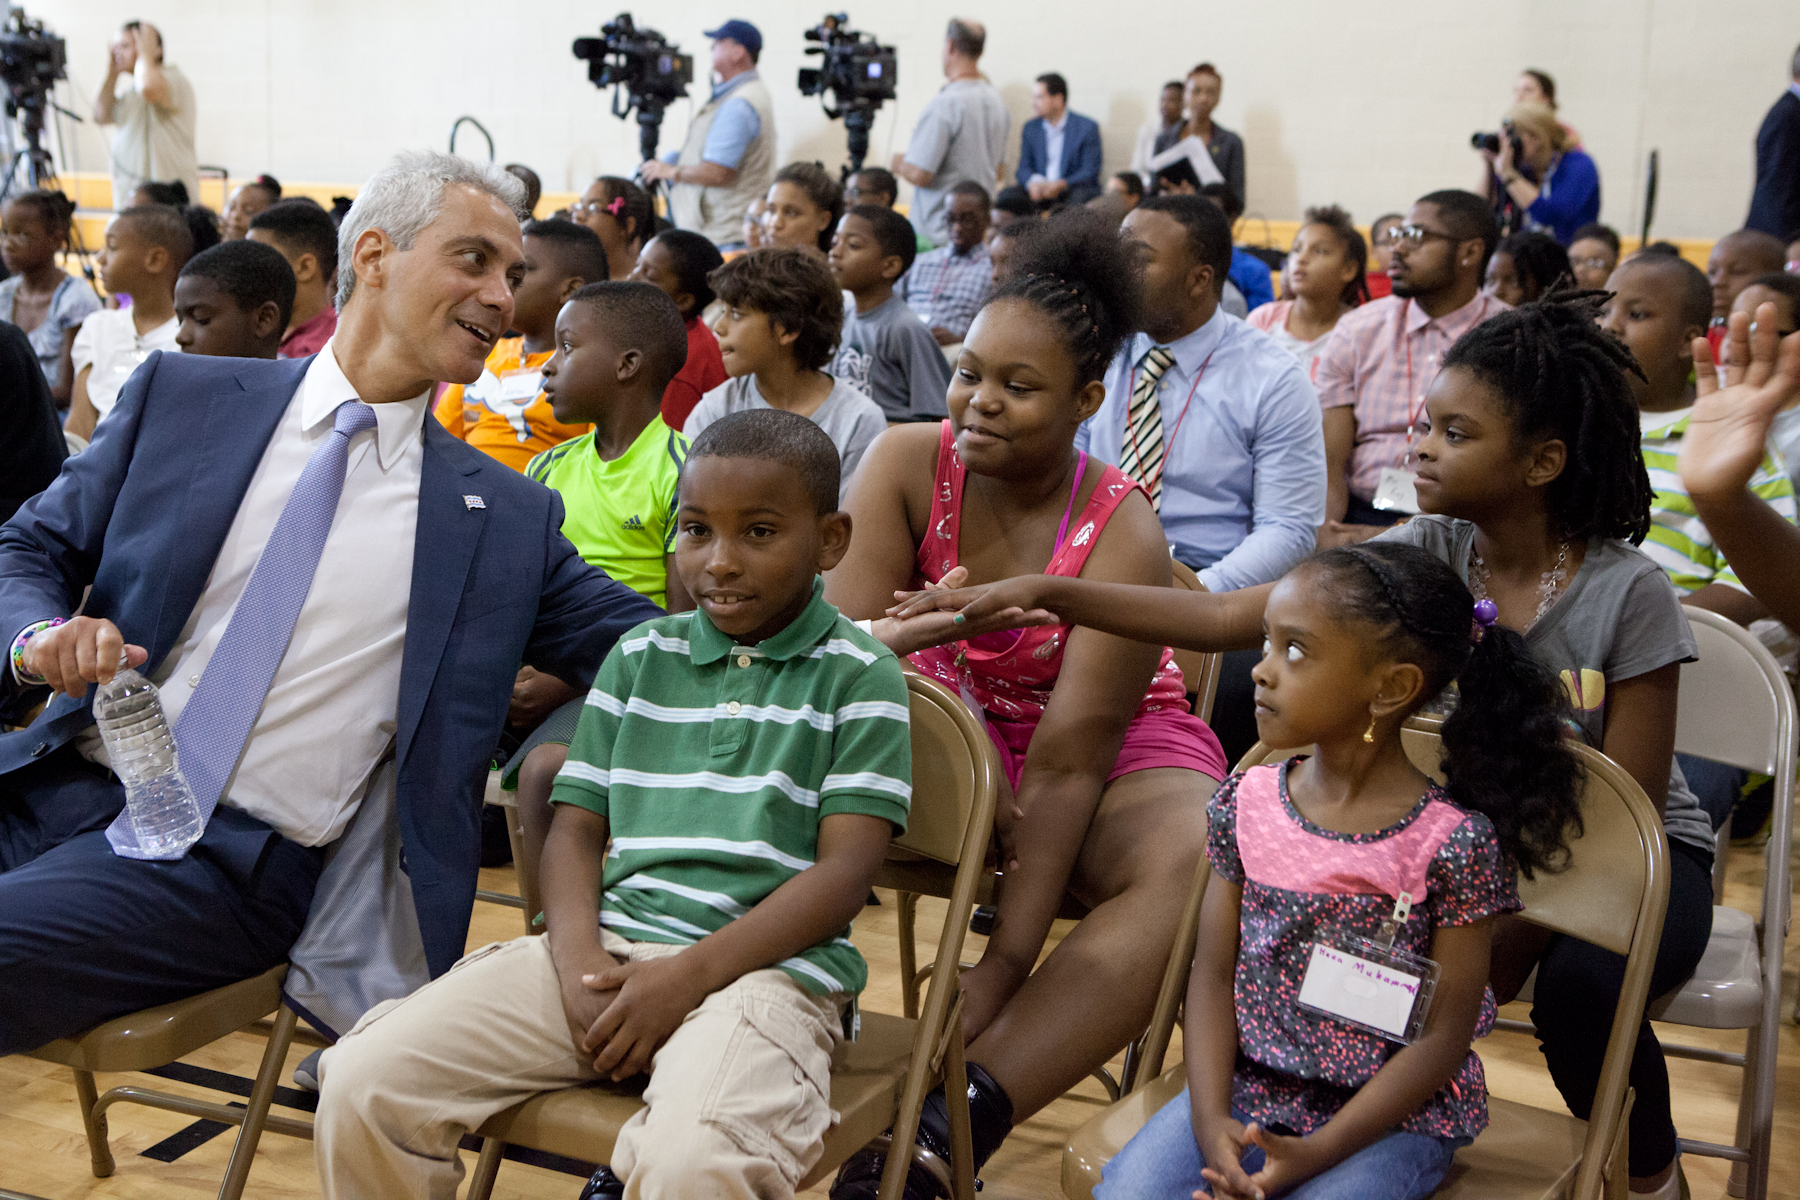 Mayor Emanuel visits with SEEK students at program kick off